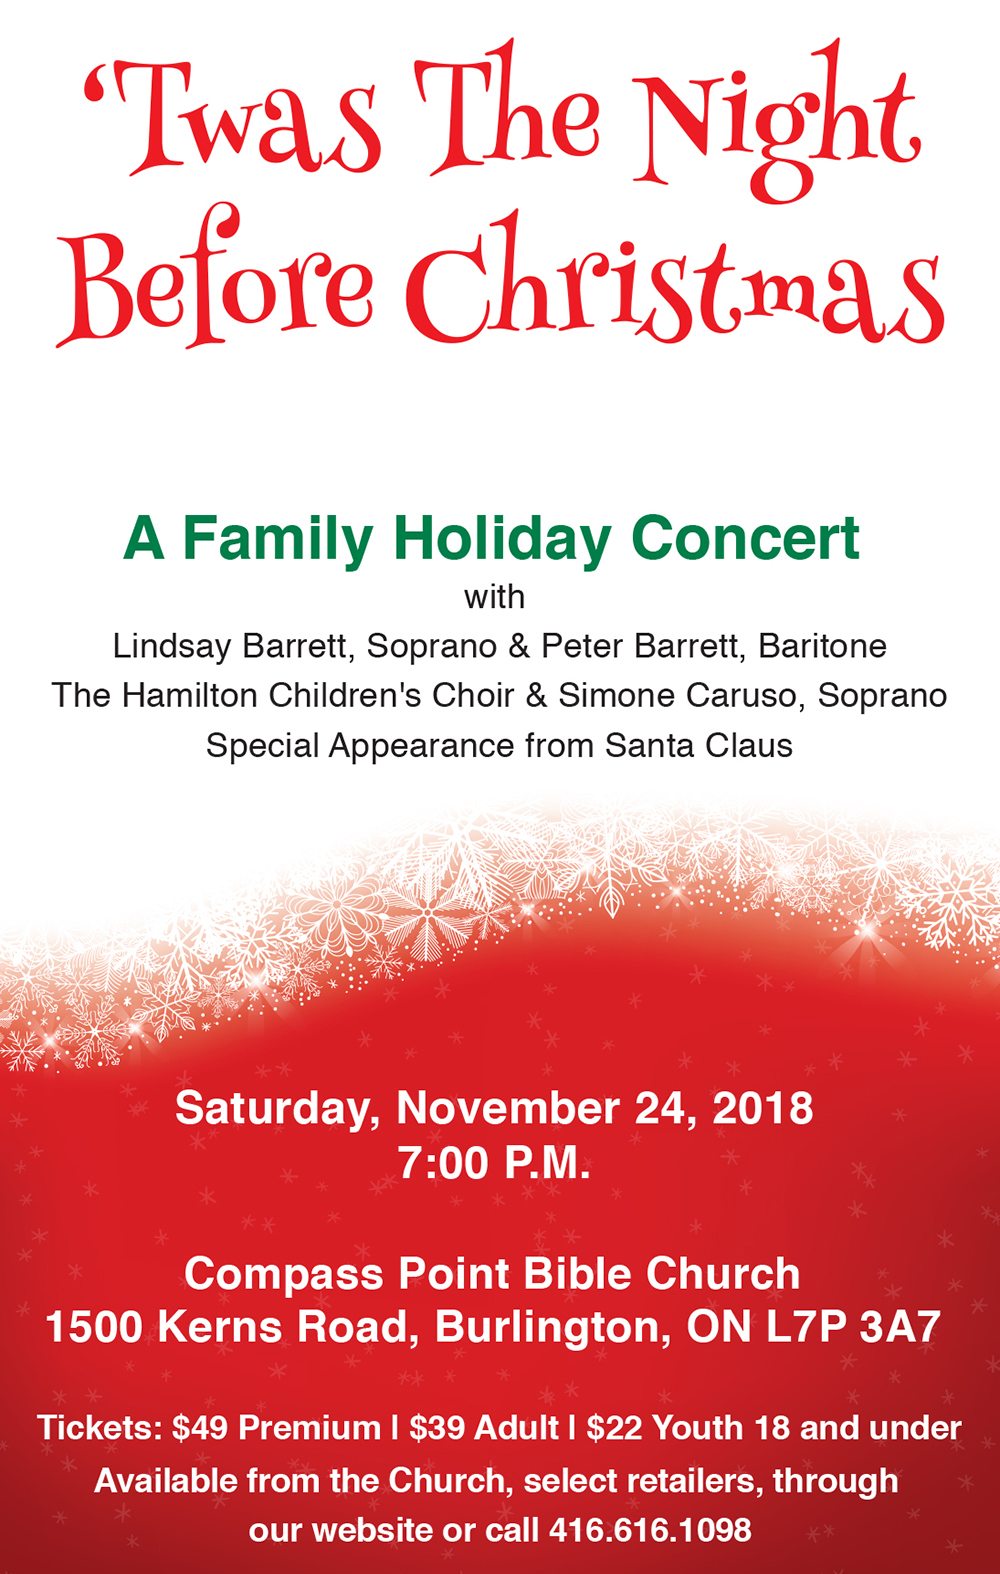 'Twas the Night Before Christmas family holiday concert poster